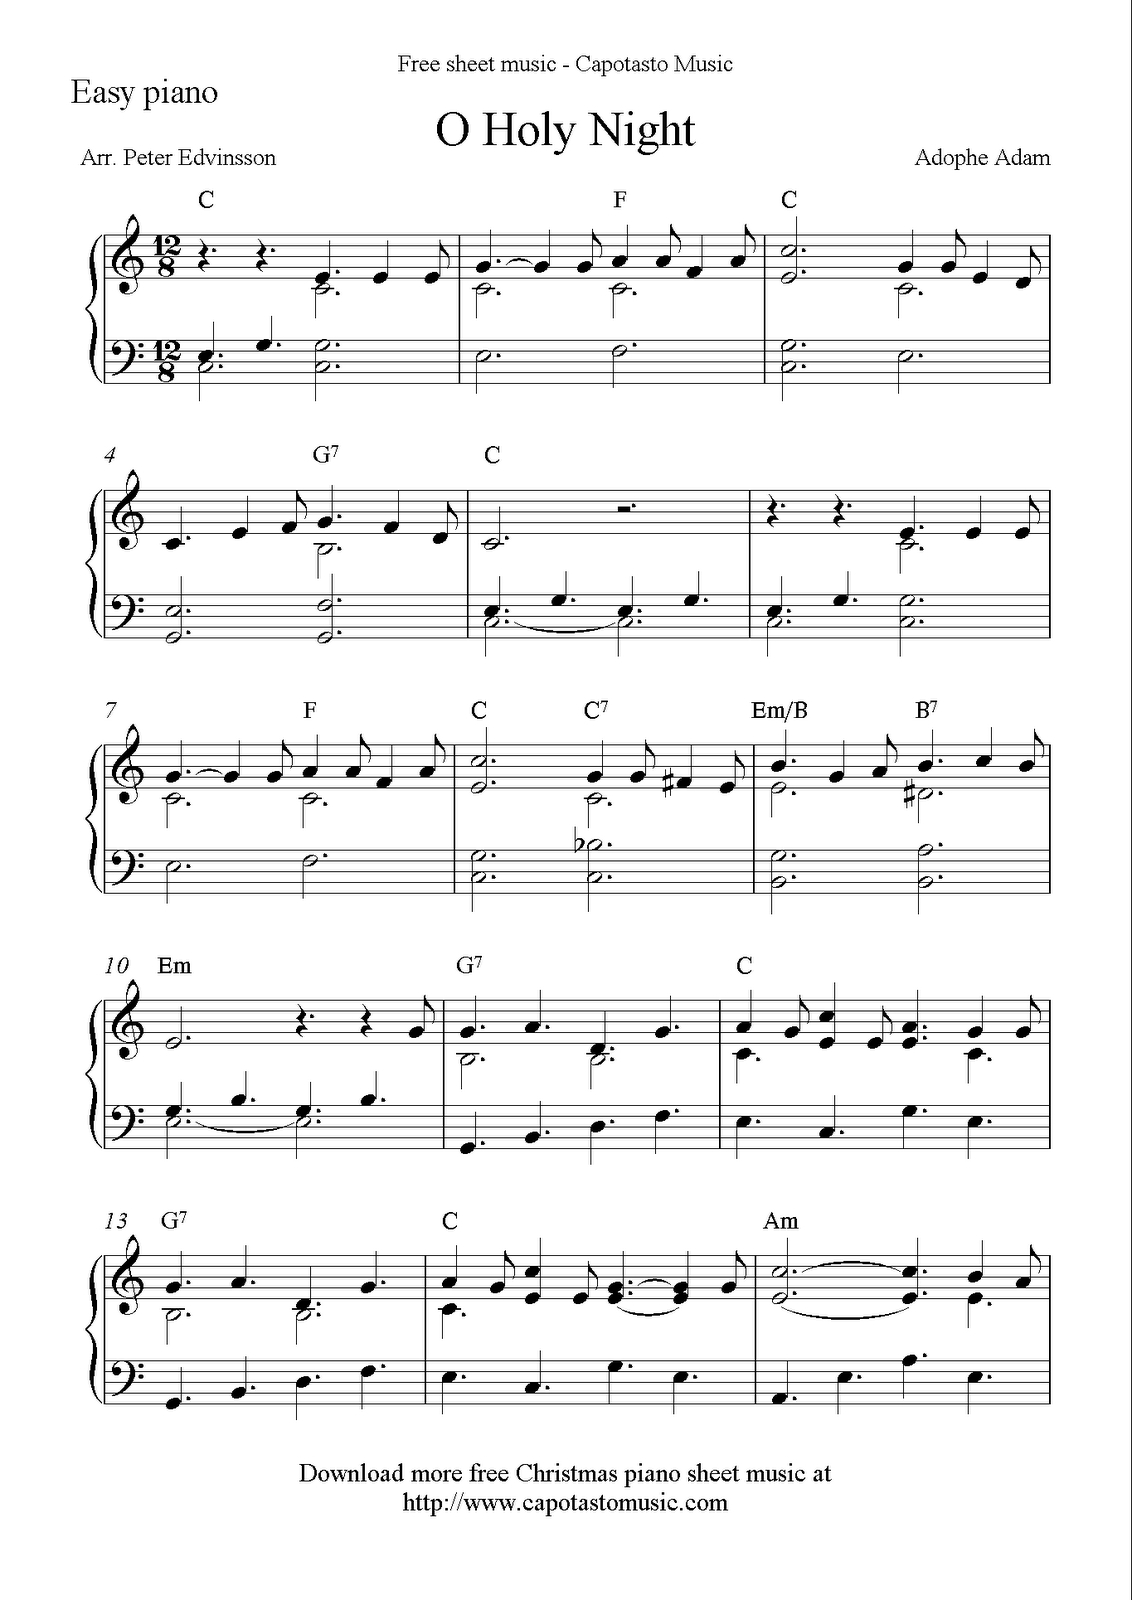 Easy Piano Solo Arrangementpeter Edvinsson Of The Christmas - Christmas Piano Sheet Music Easy Free Printable